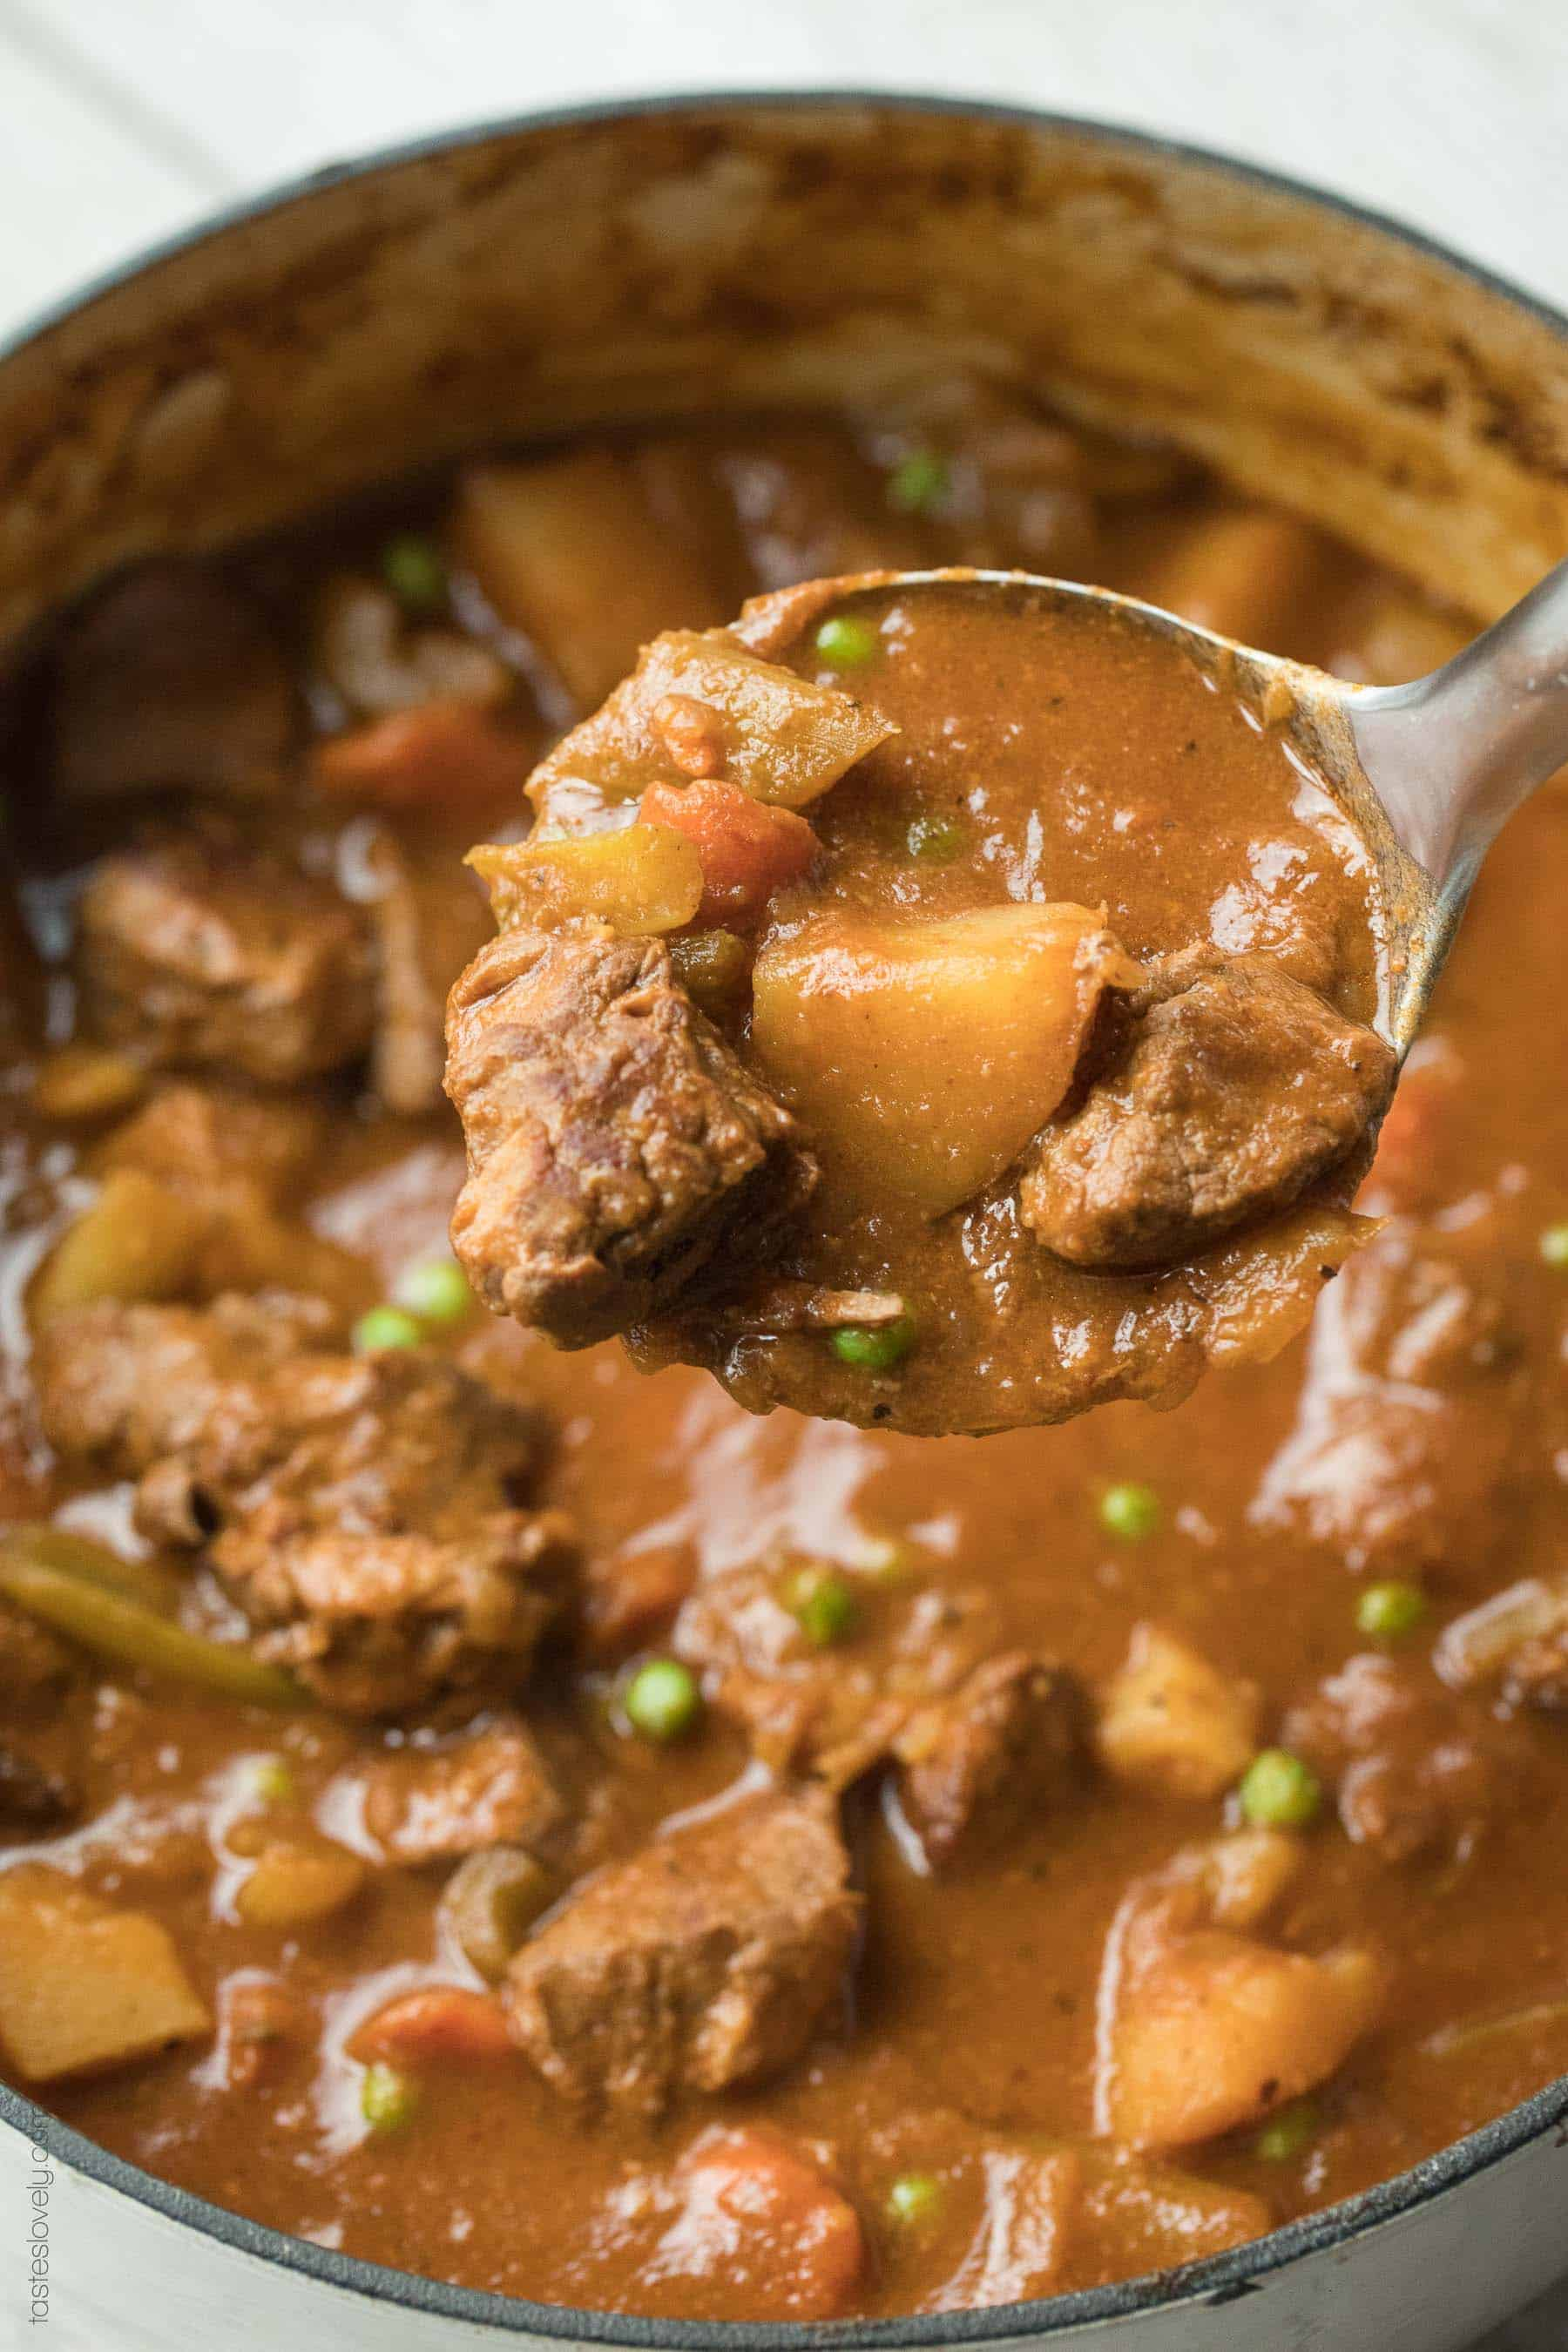 Paleo & Whole30 Beef Stew - dutch oven and slow cooker recipe. So healthy and delicious! Gluten free, grain free, dairy free, sugar free, clean eating.